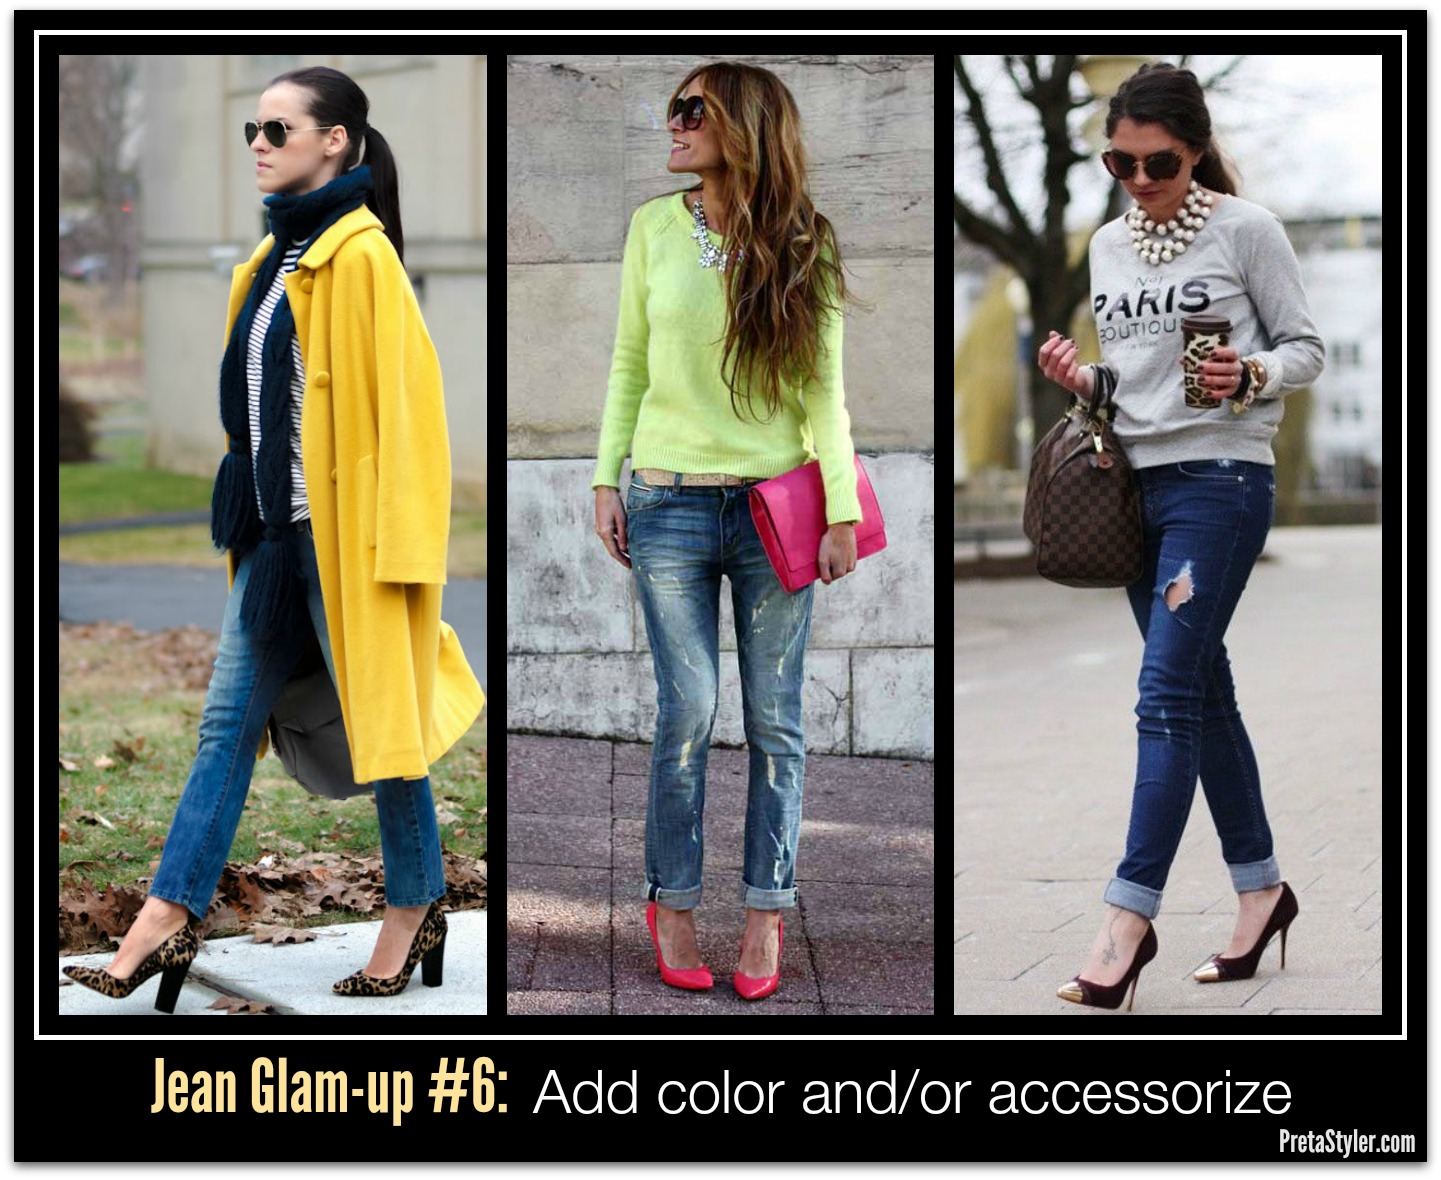 How to Glam-up Blue Jeans #6